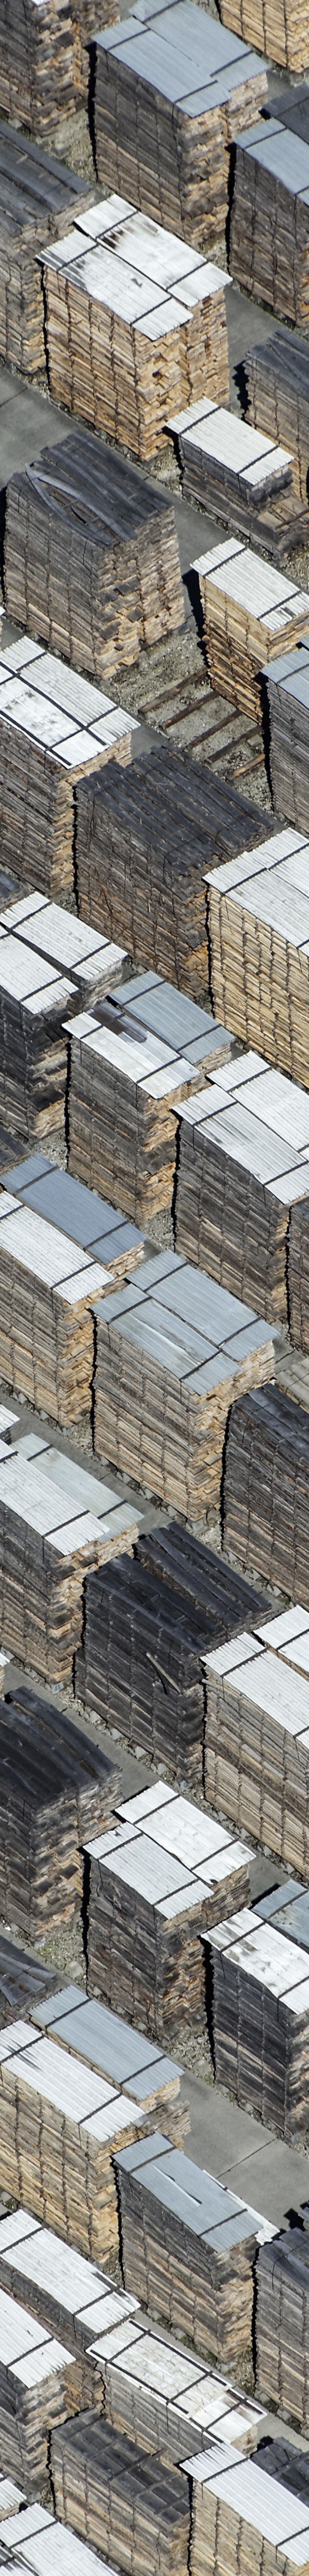 Aerial view of the timber warehouse of the Obermeier company in Schwindegg - Klaus Leidorf Aerial Photography